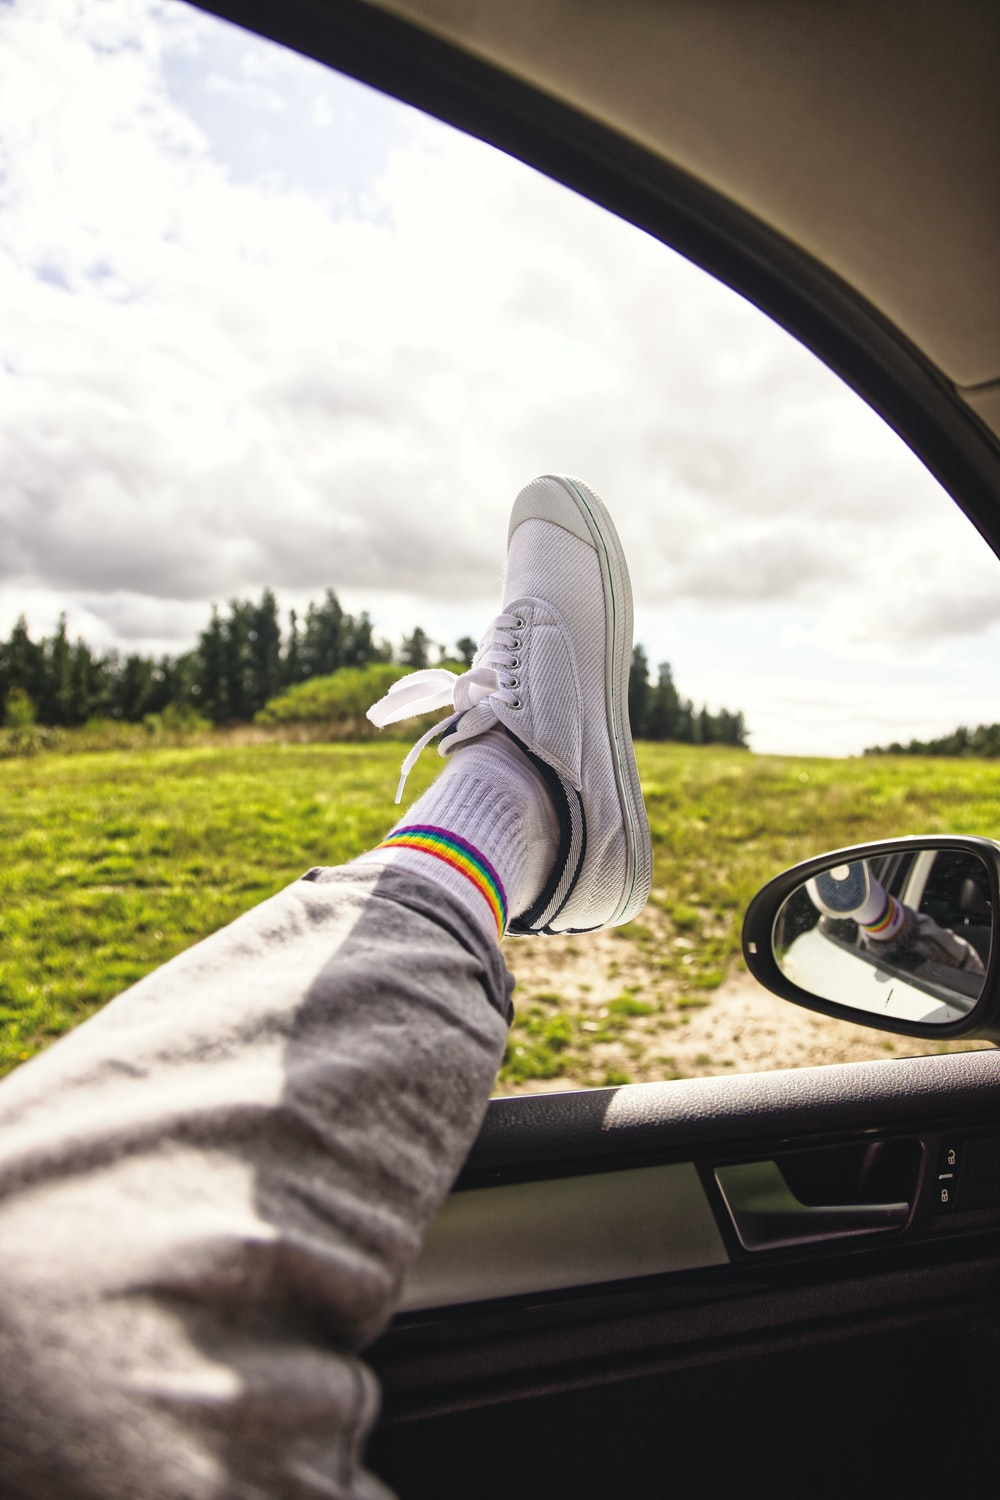 person in gray pants and gray sneakers sitting inside car during daytime